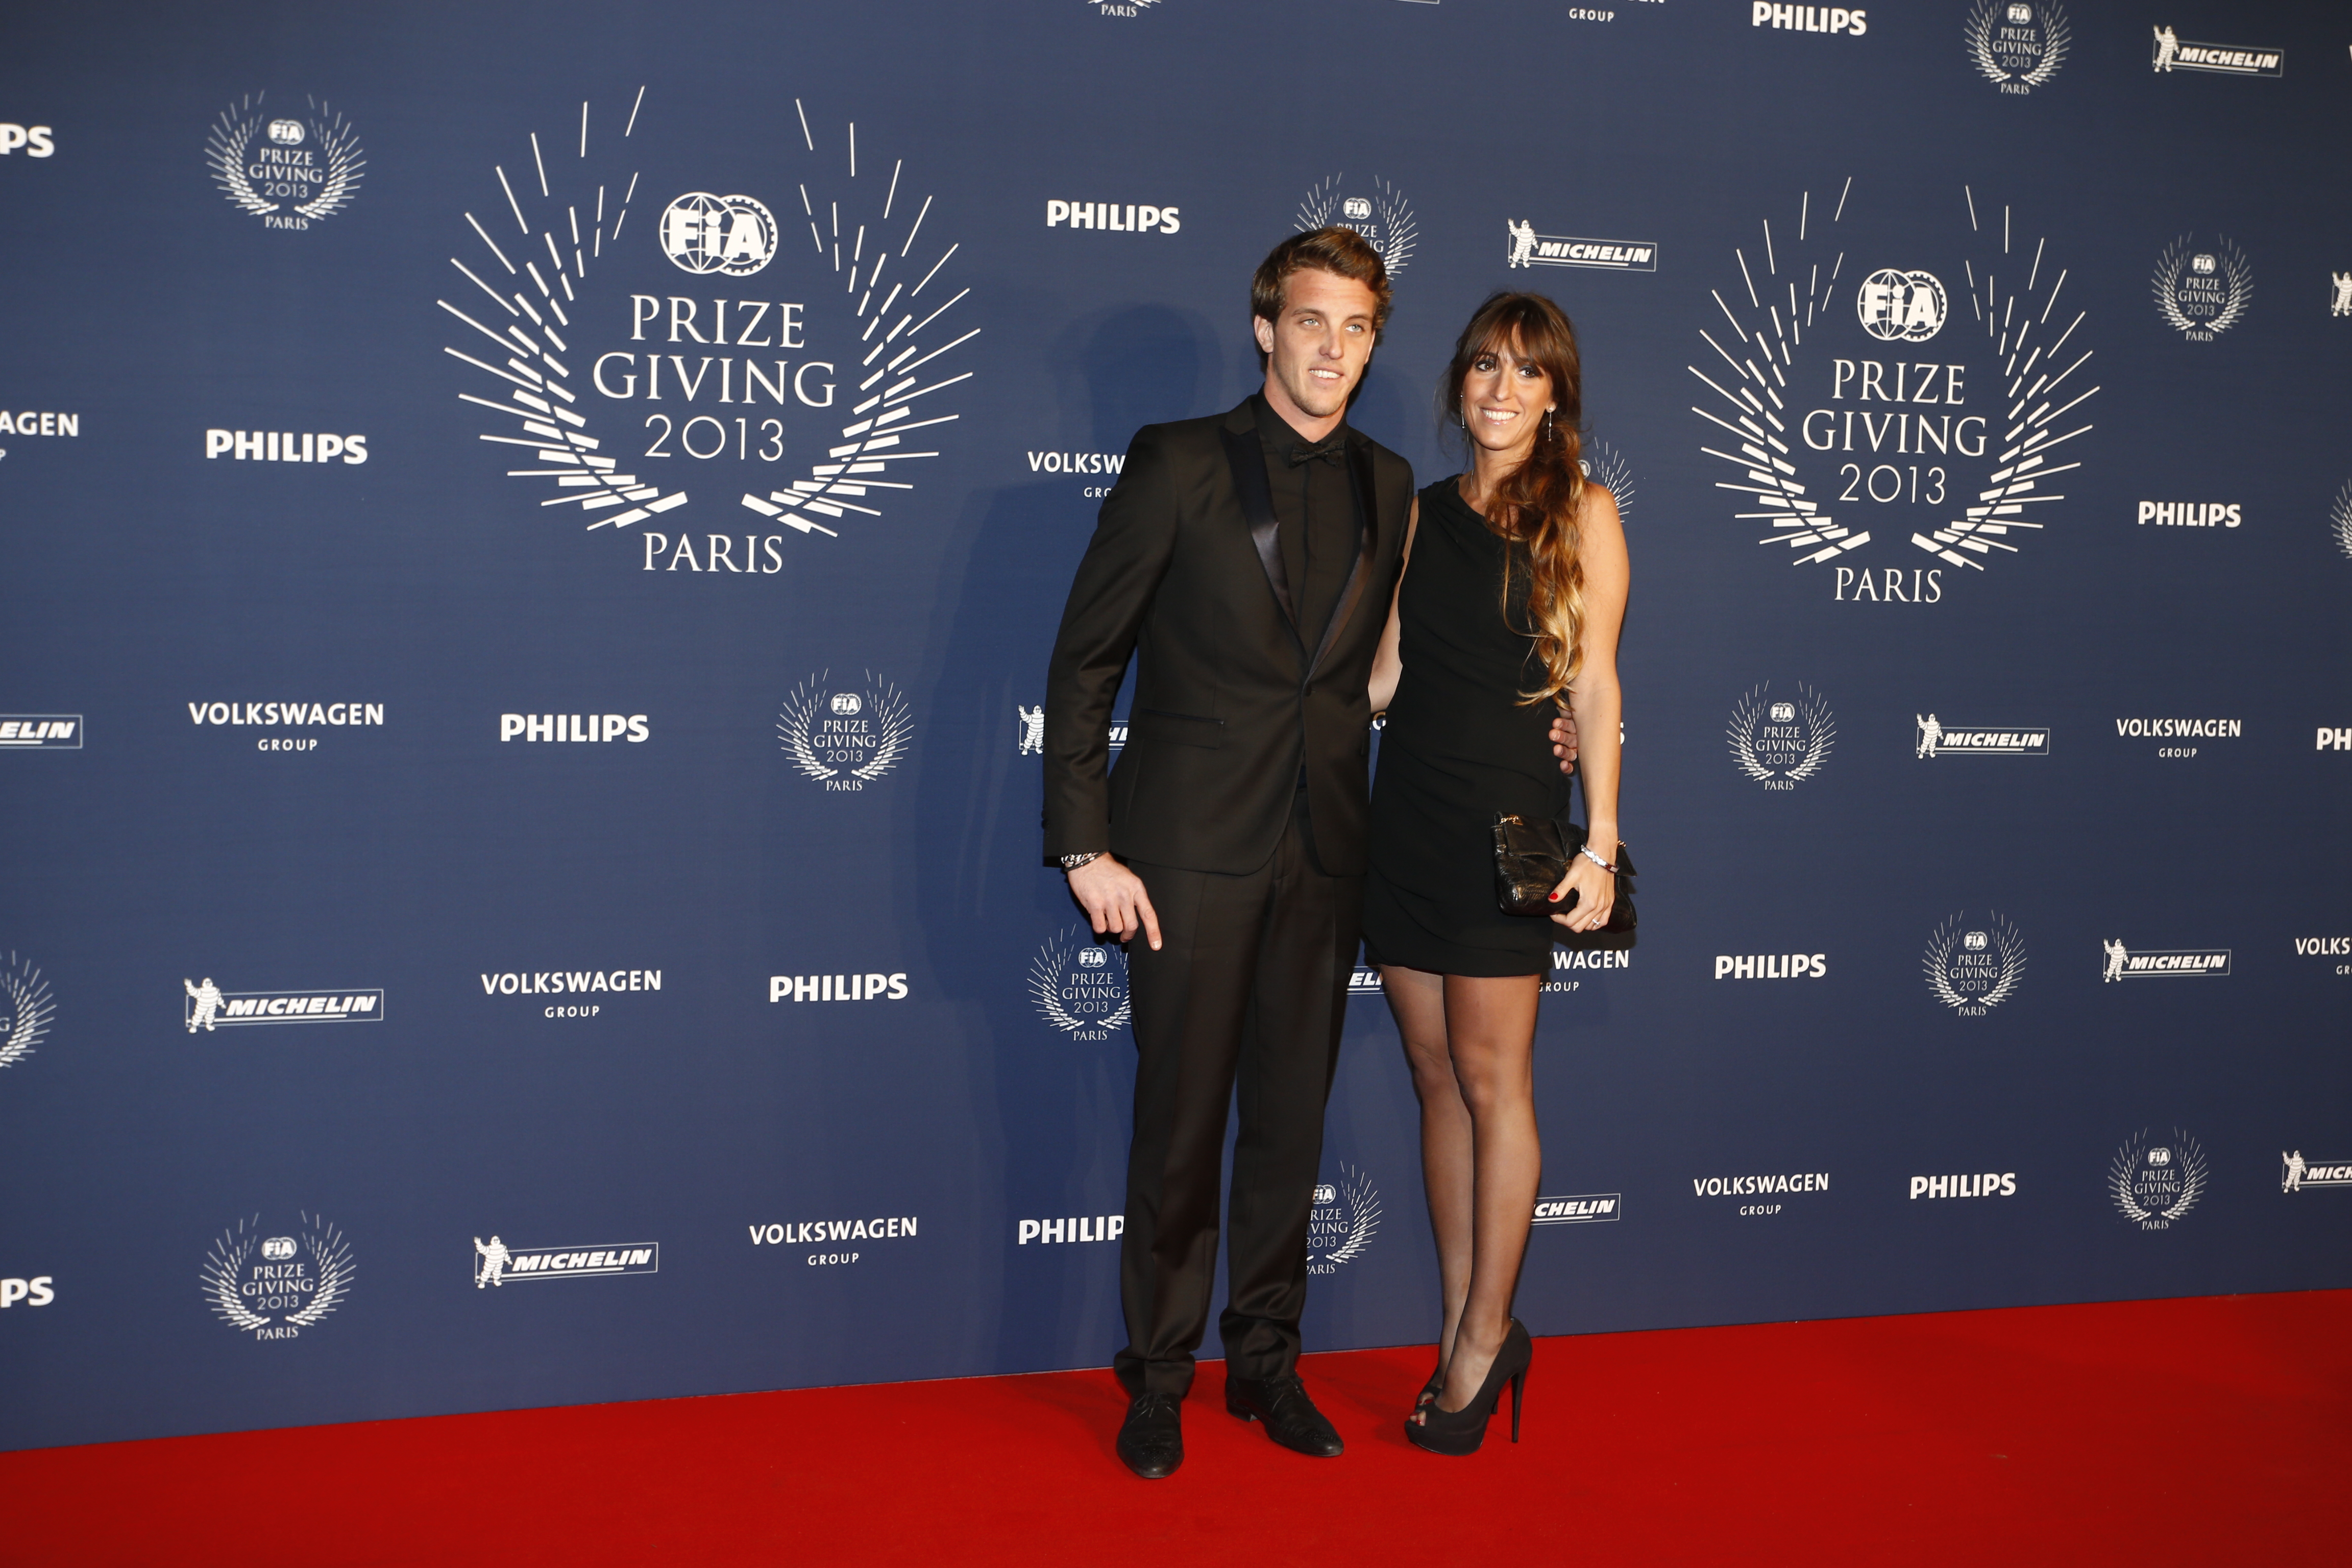 2013 FIA Prize-Giving Gala Highlights